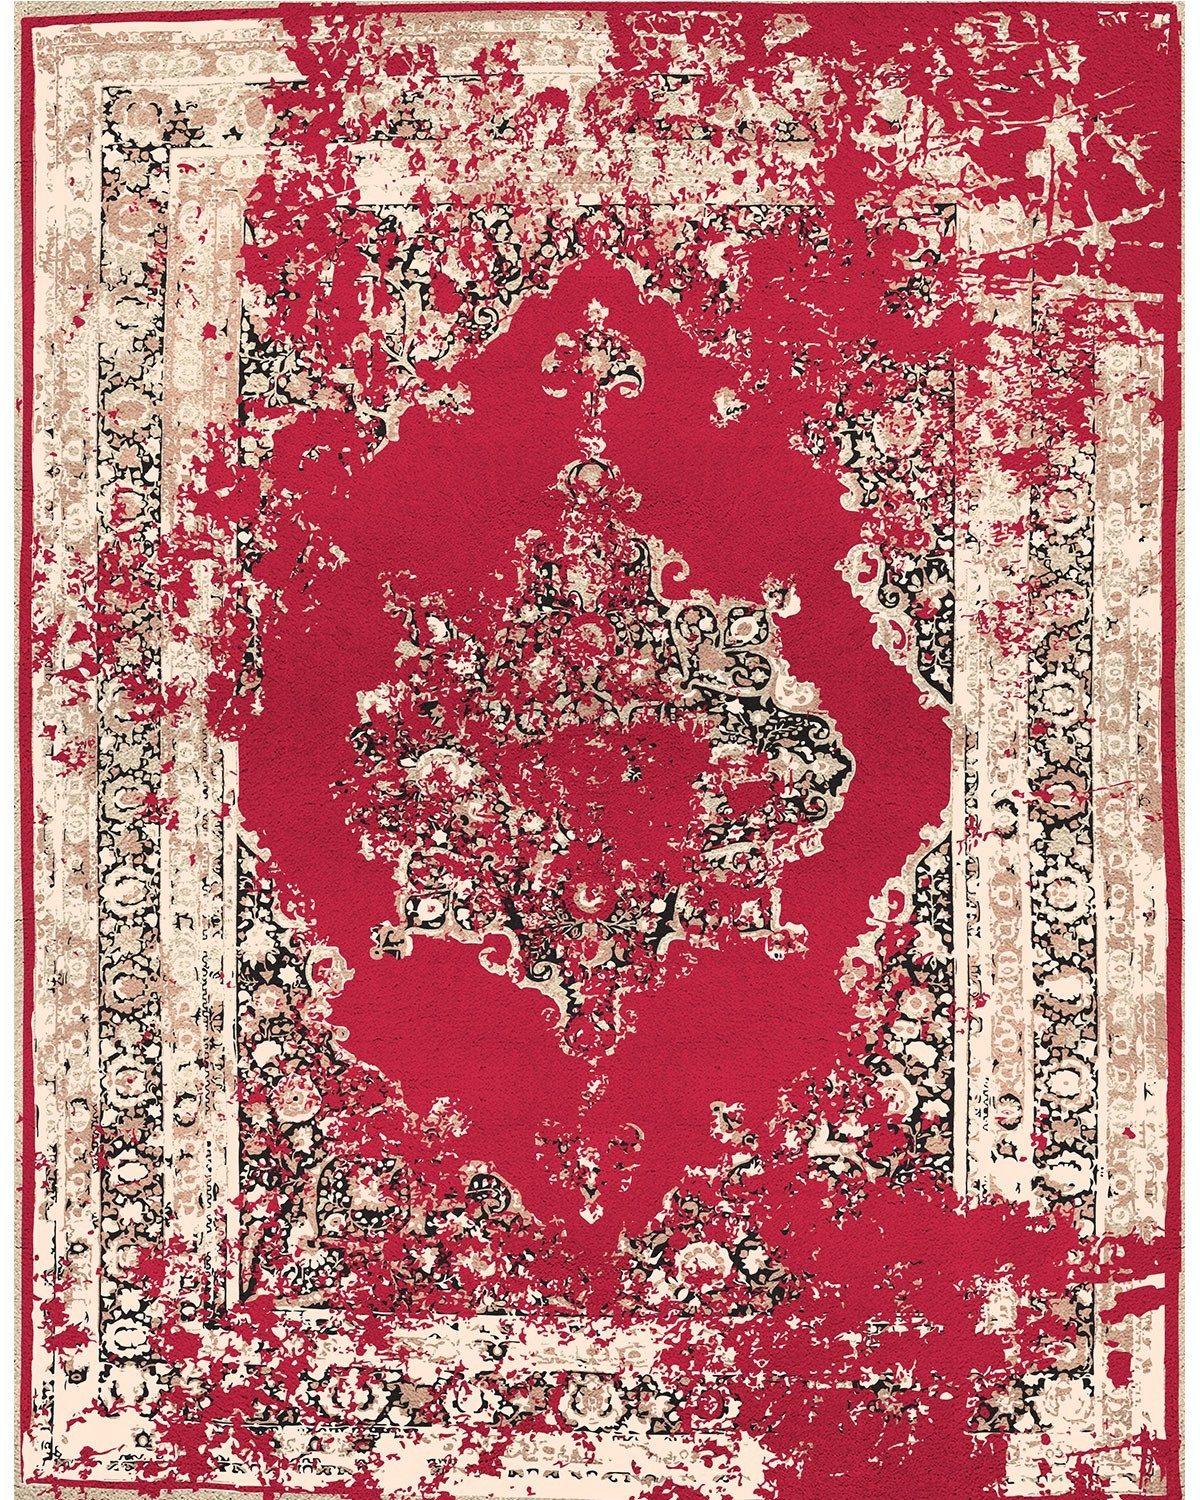 Top Living Room Rugs You Will Fall In Love With livingroomrugs Top Living Room Rugs You Will Fall In Love With habibib